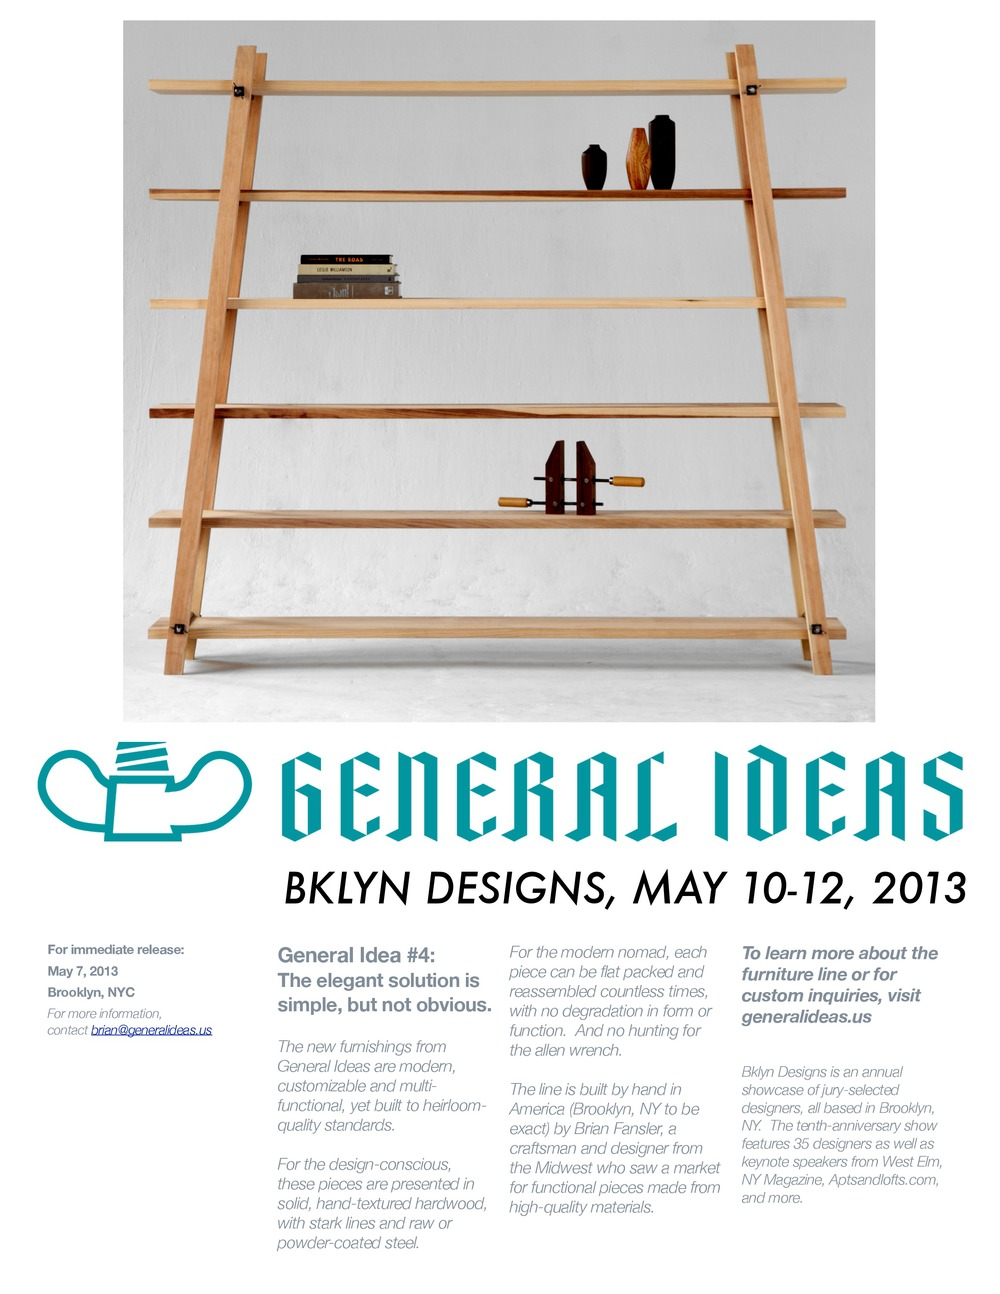 General Ideas Press Release 5:13.jpg